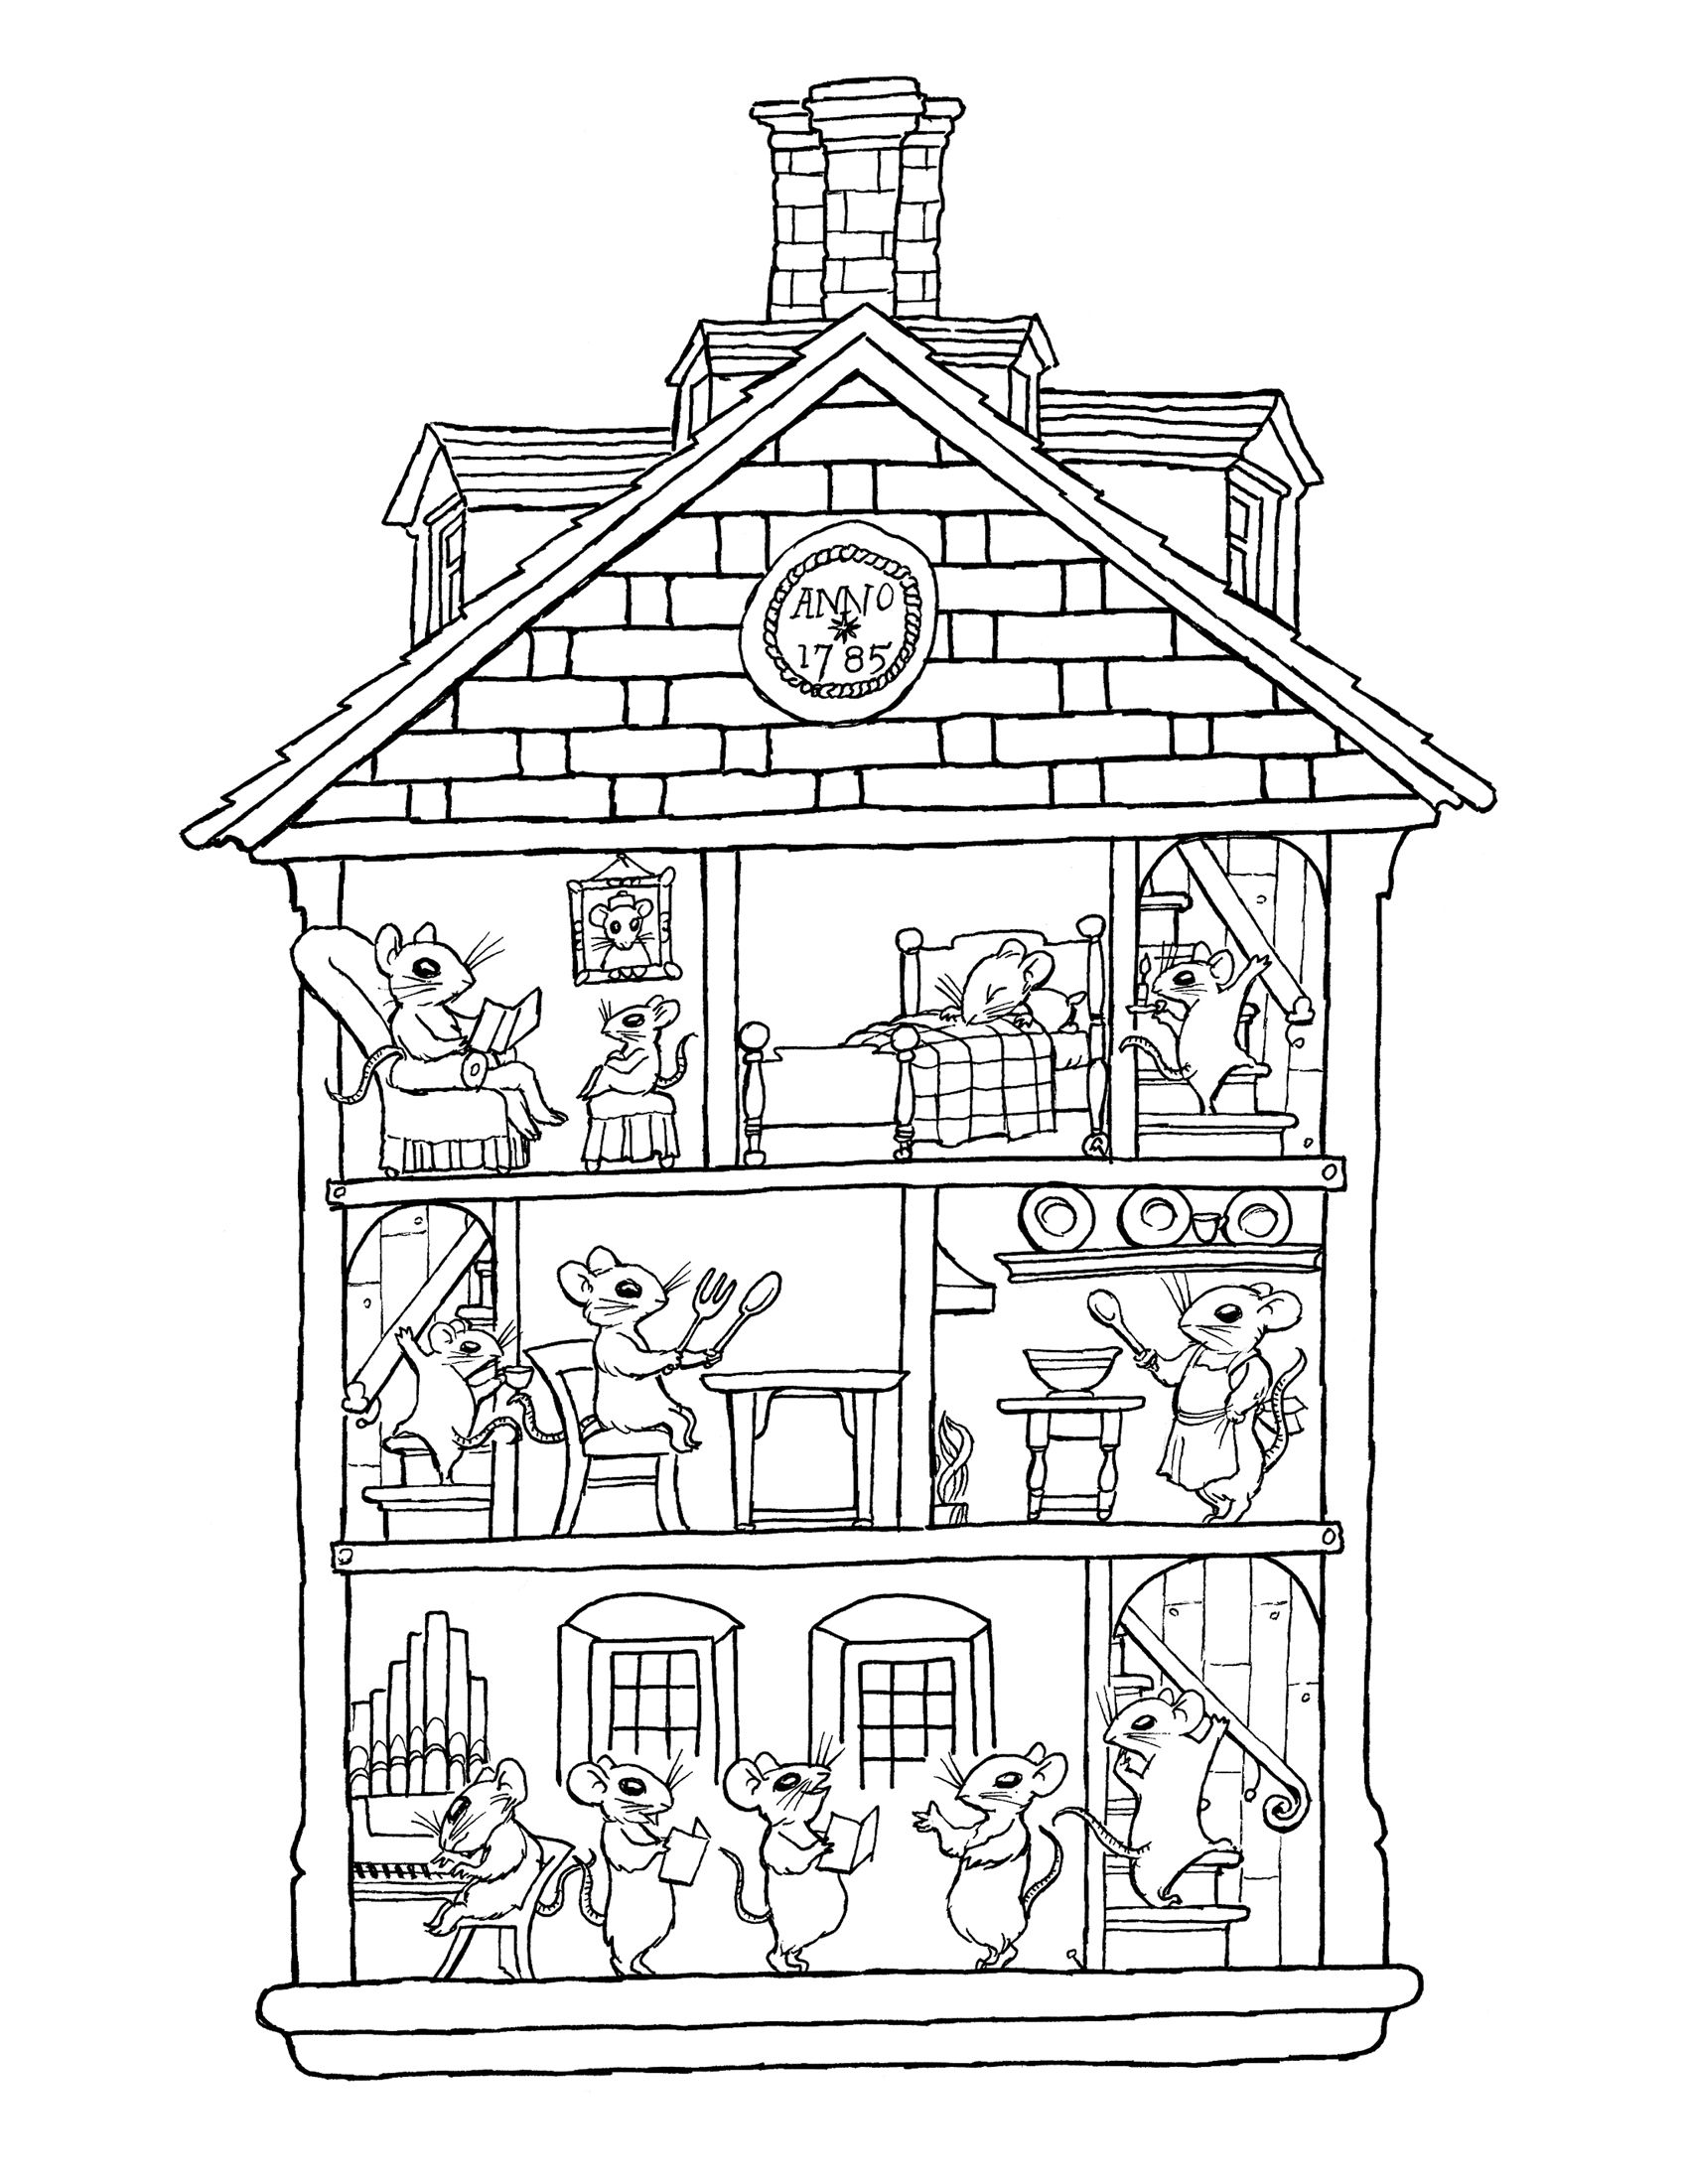 Houses And Homes Coloring Pages For Preschool Kindergarten Elementary School Children To Print